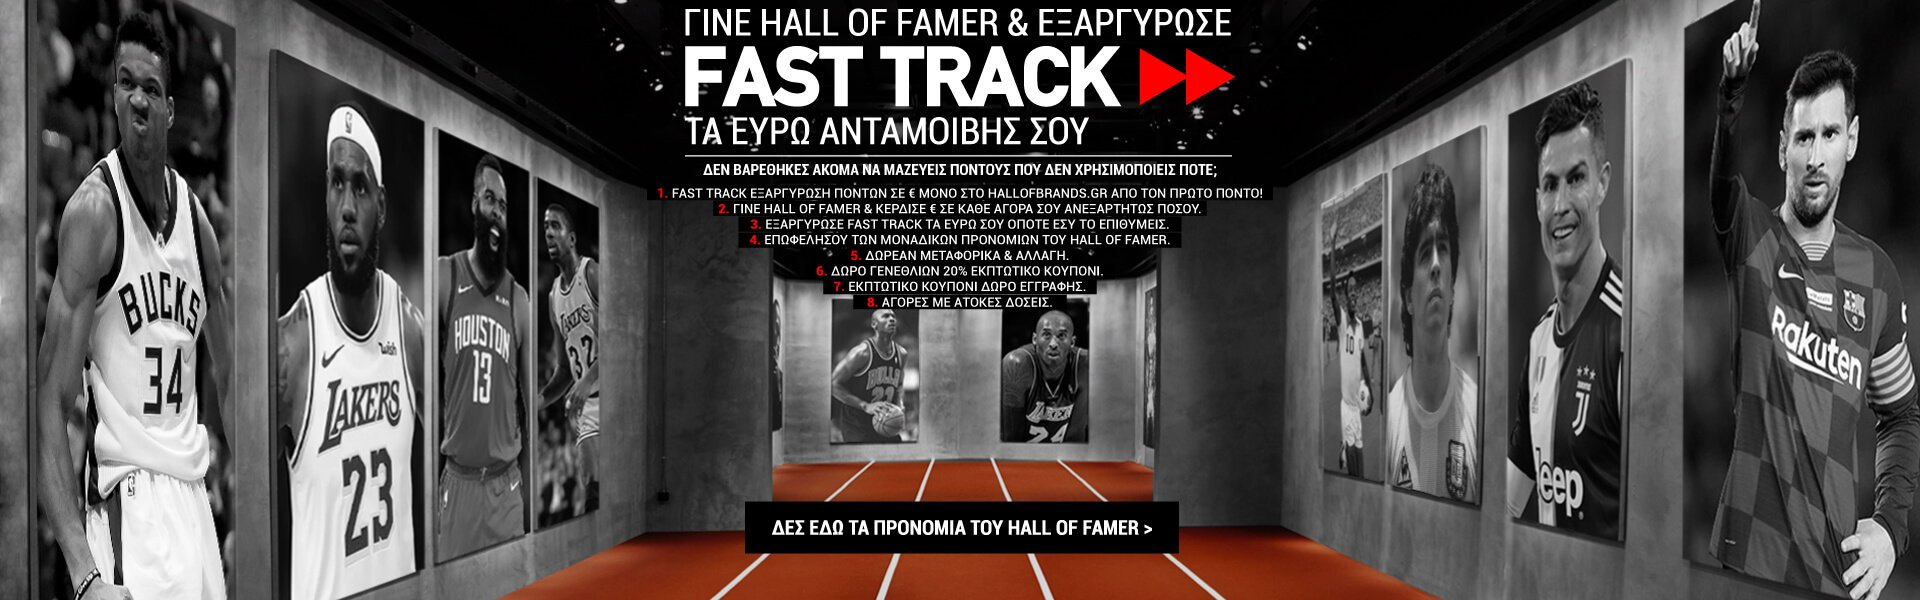 ΓΙΝΕ HALL OF FAMER